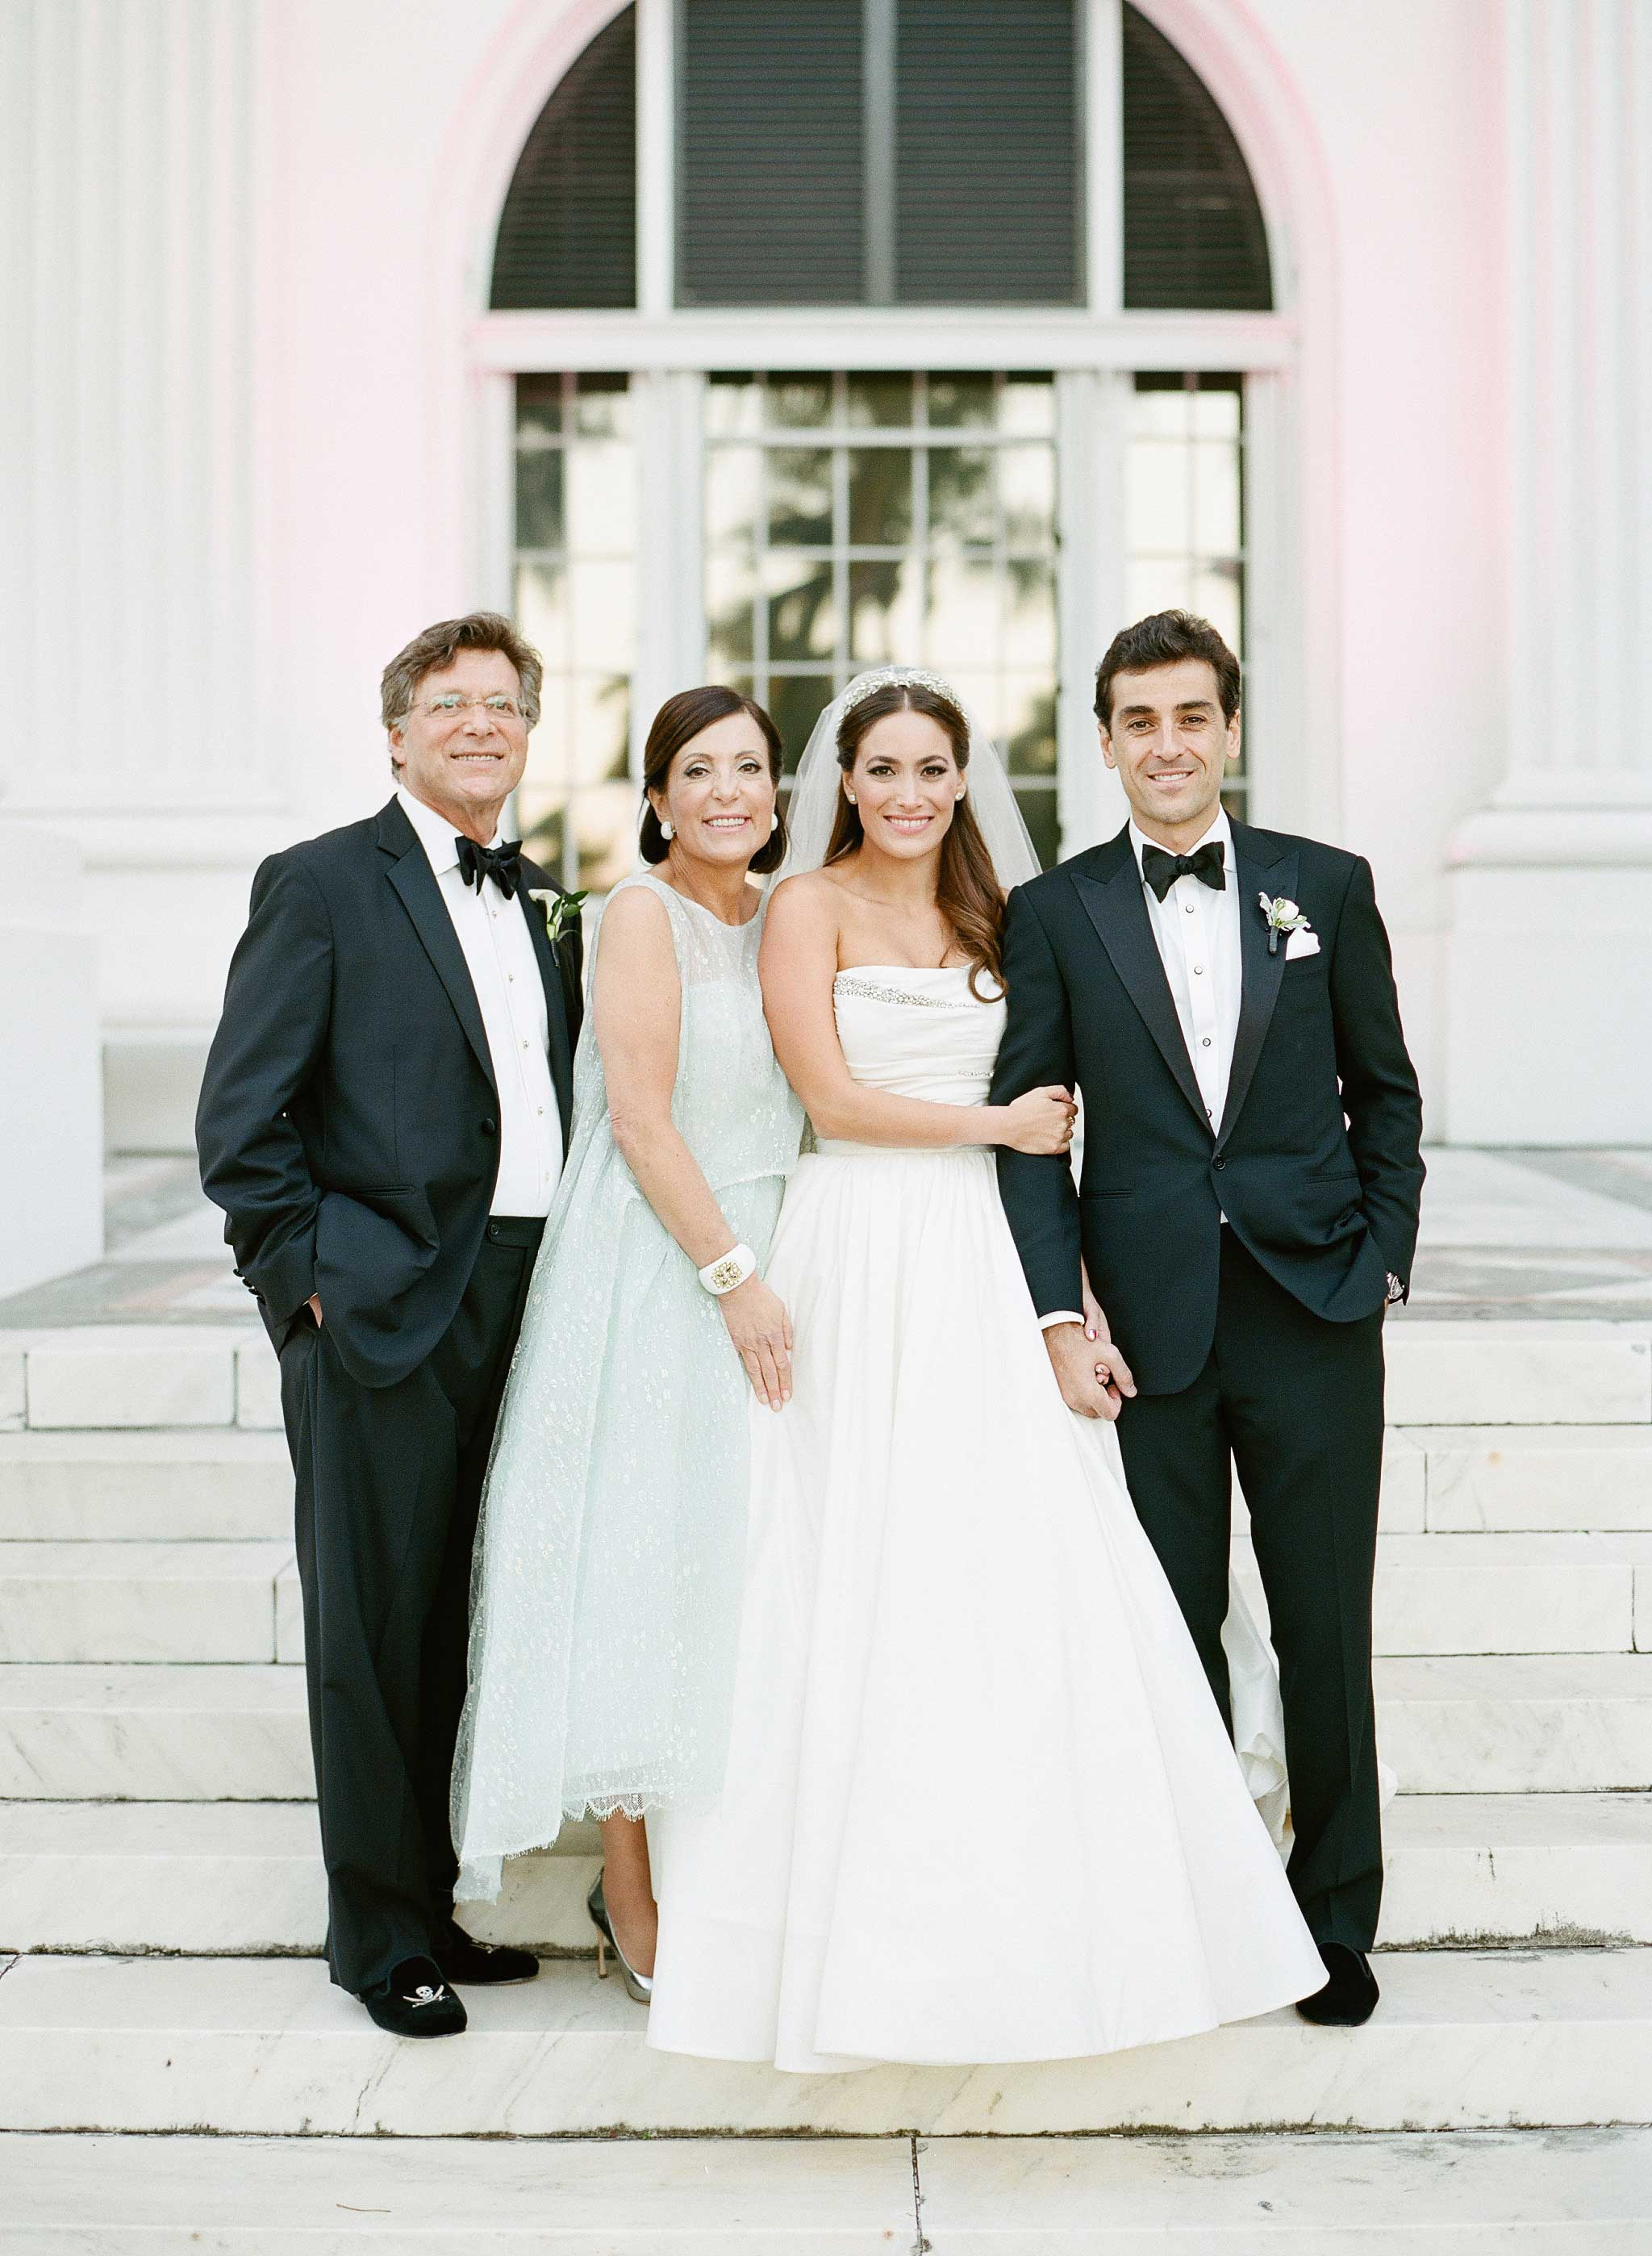 Pastel wedding ideas pastel blue mother of bride dress mother's gown